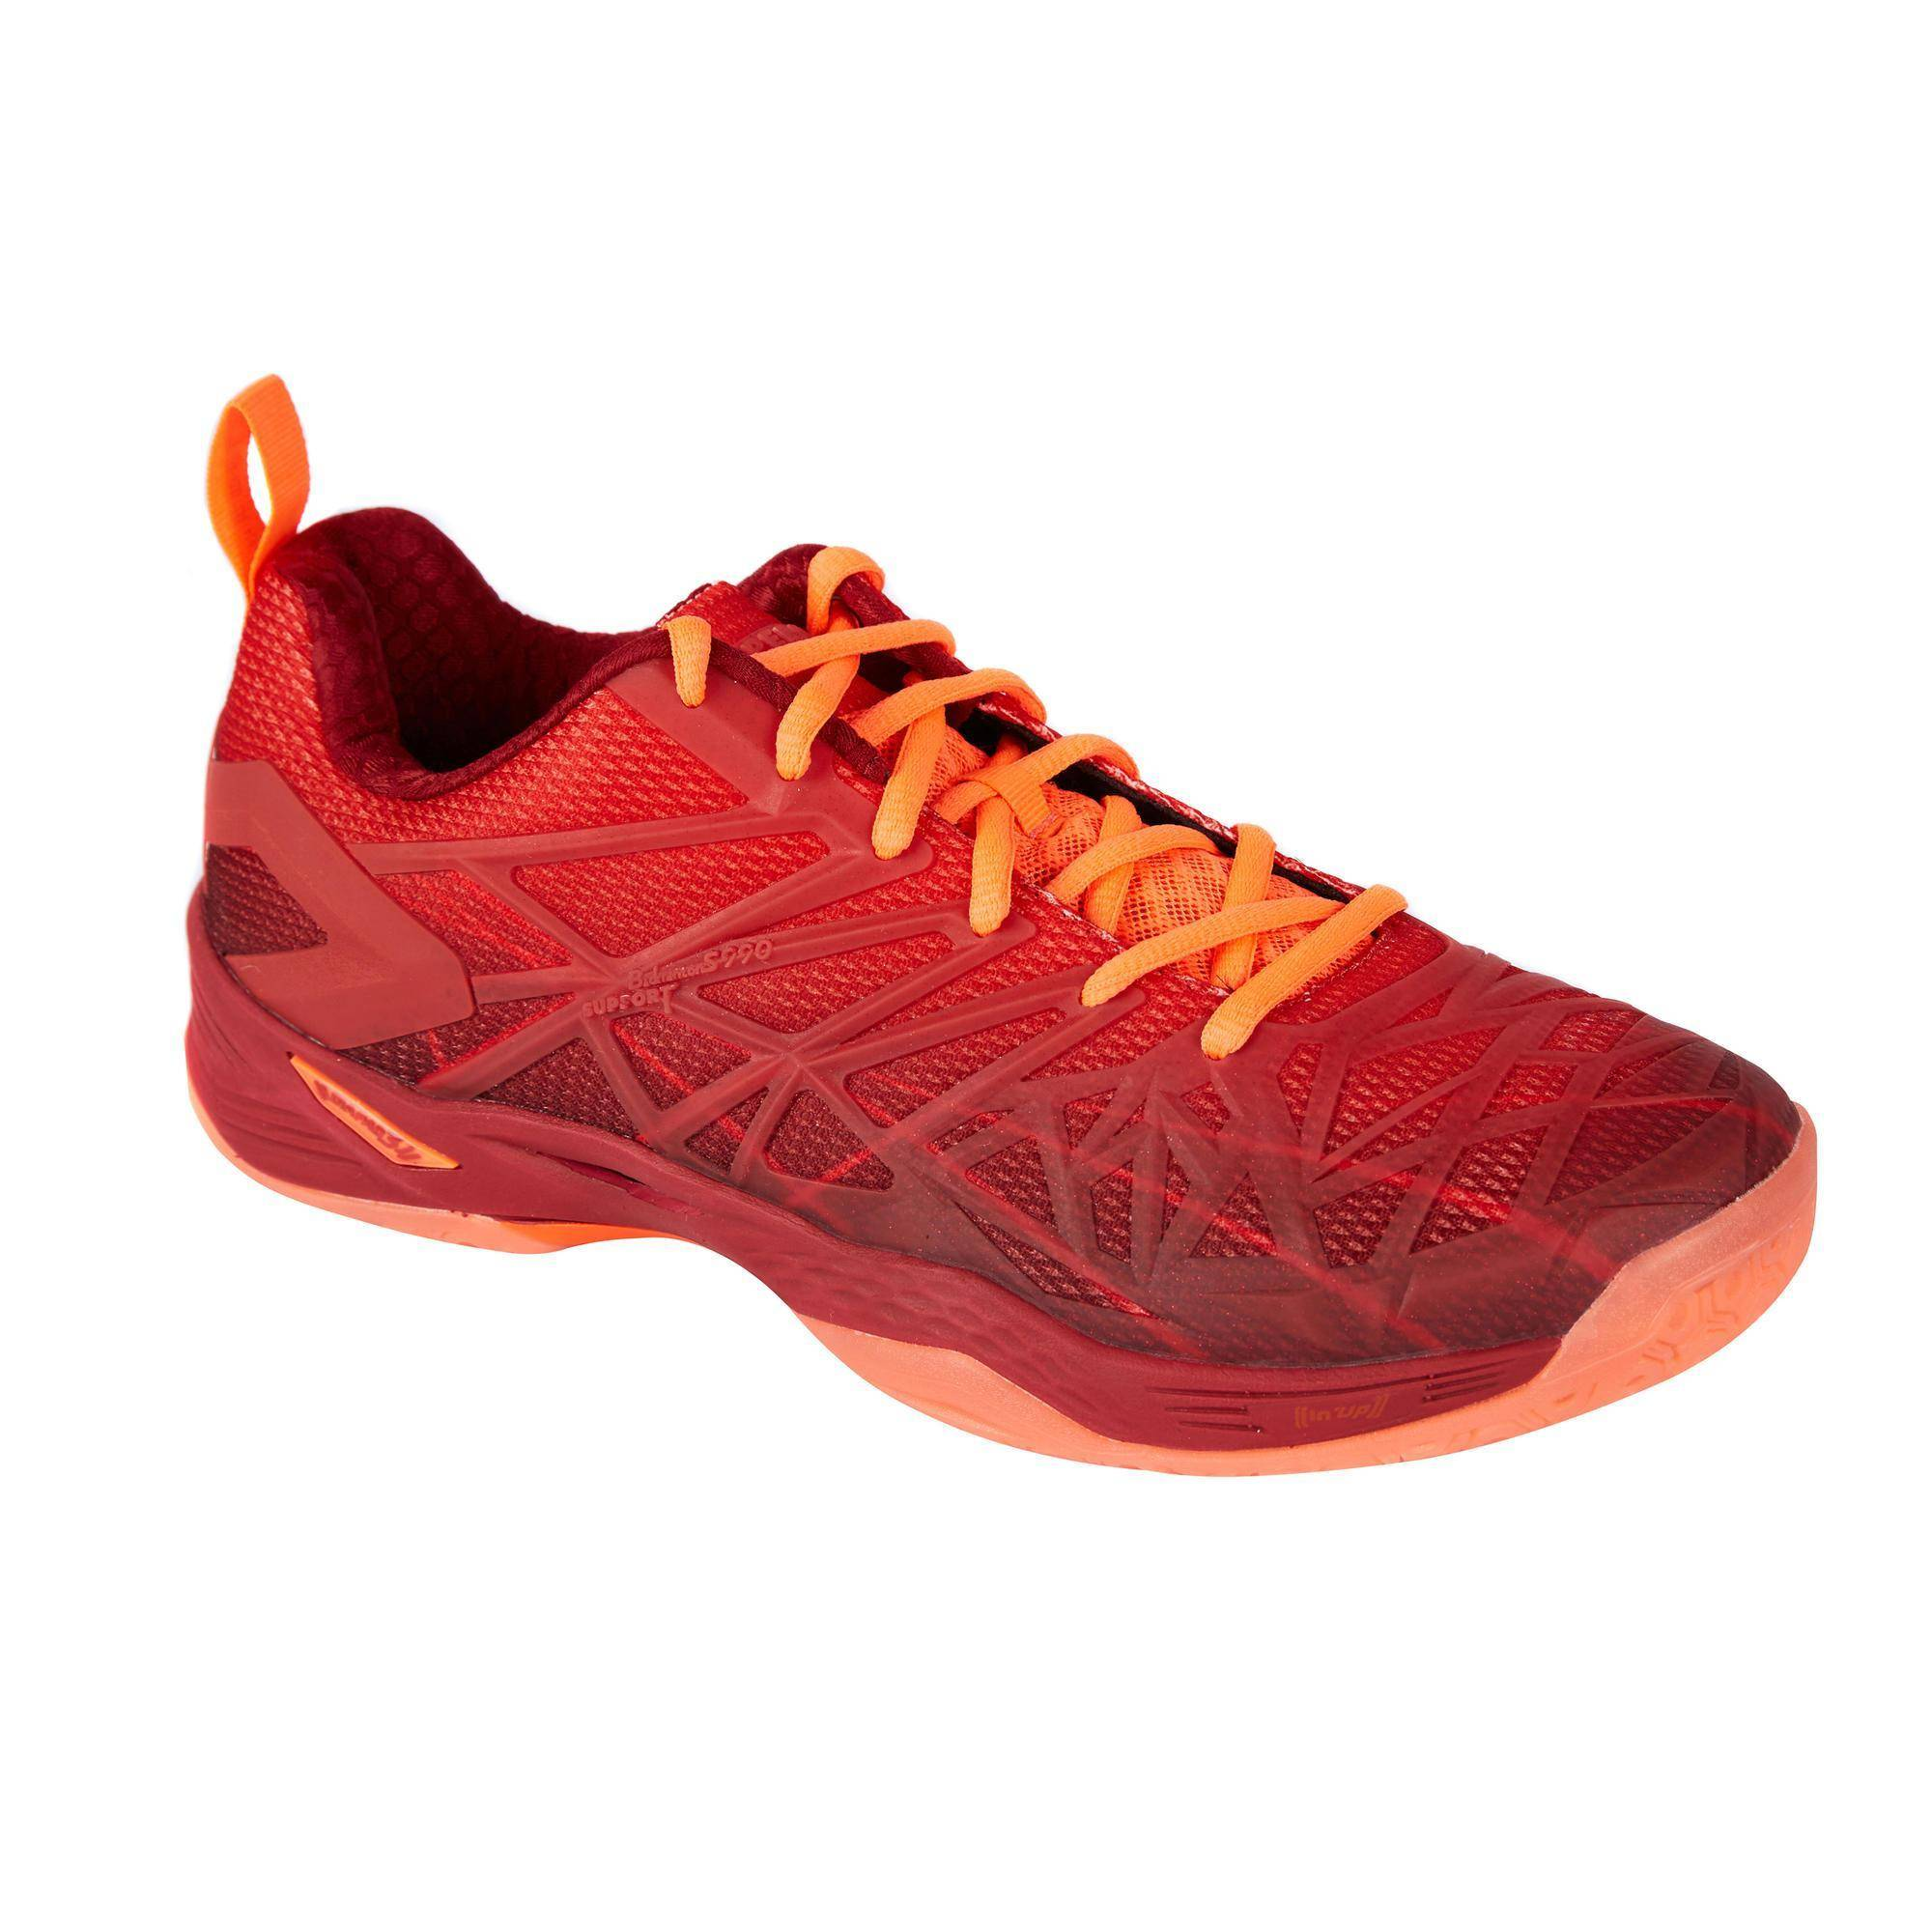 Perfly Chaussures De Badminton Sports Indoor Homme BS 990 - Rouge - Perfly